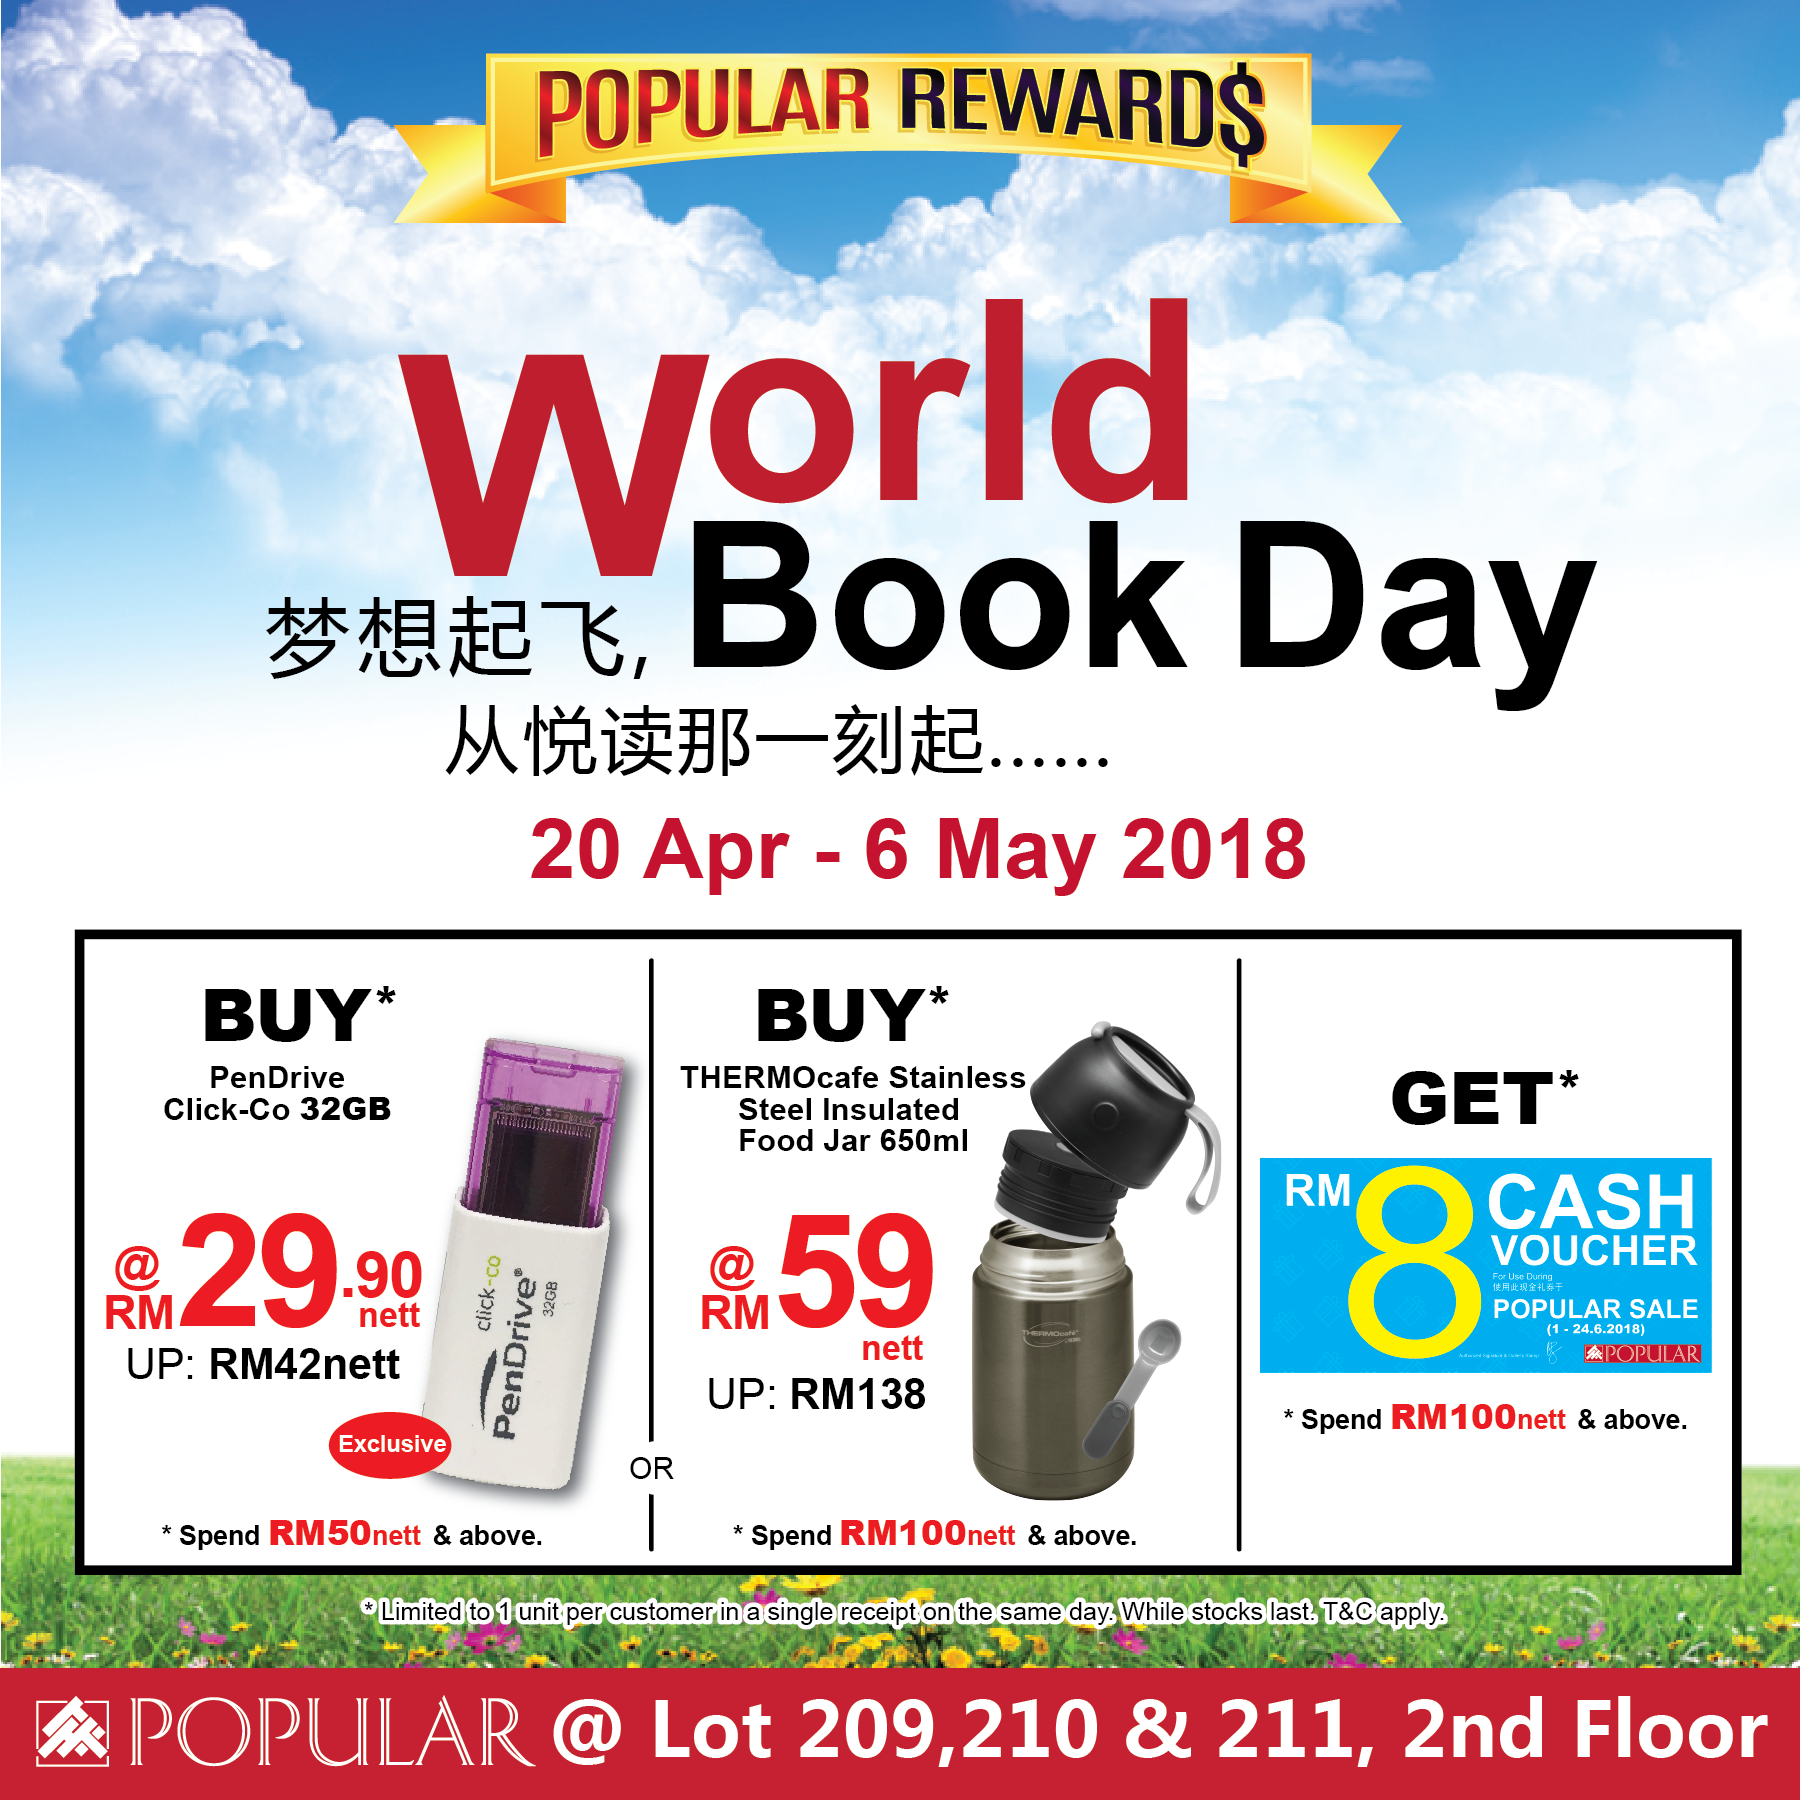 POPULAR World Book Day Promotion